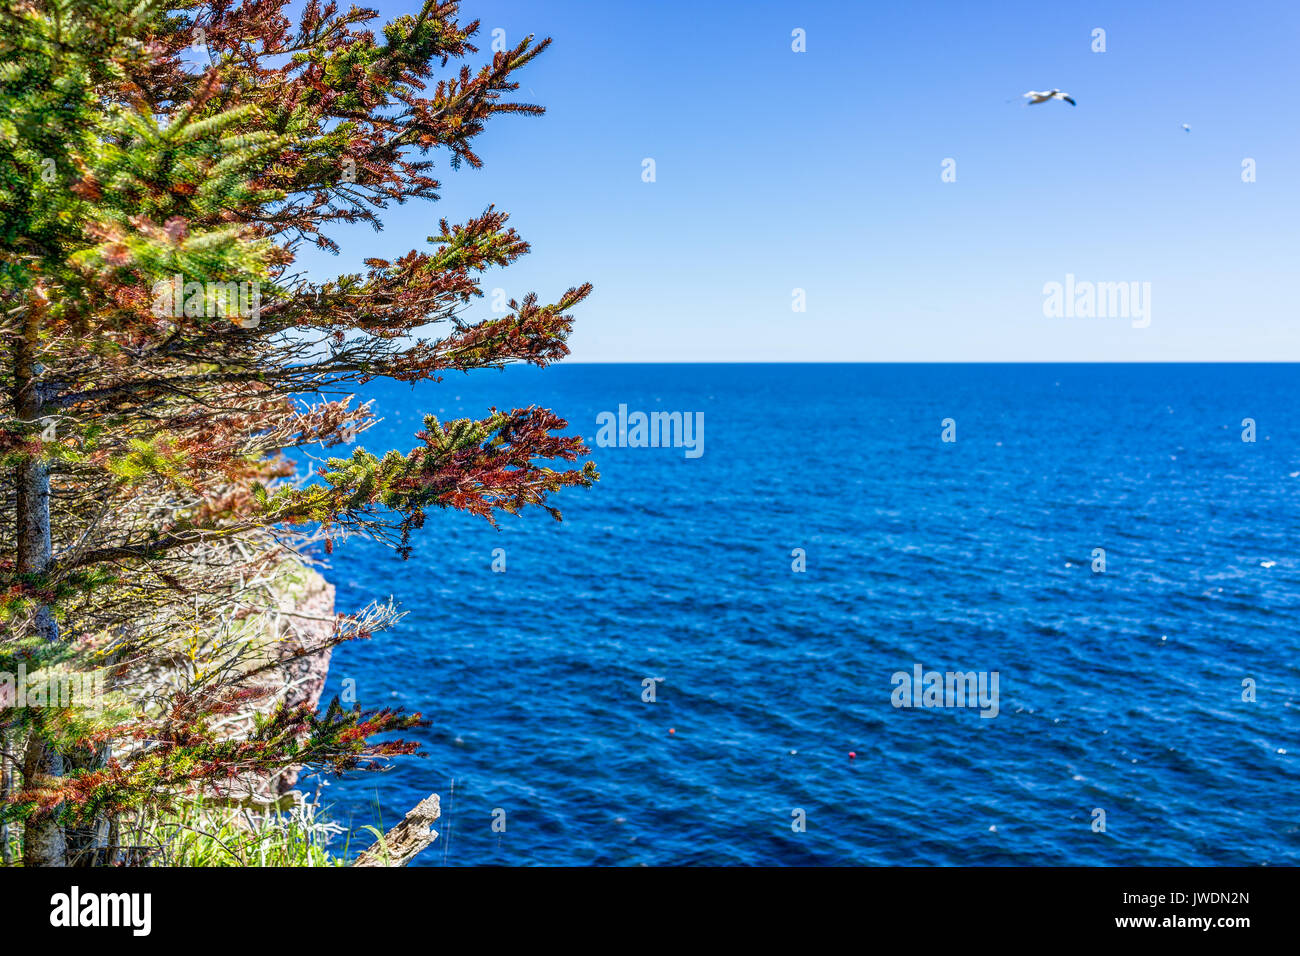 Overlook of ocean on trail in Bonaventure Island, Quebec, Canada by Perce in Gaspesie, Gaspea area with gannet bird flying and red pine tree - Stock Image